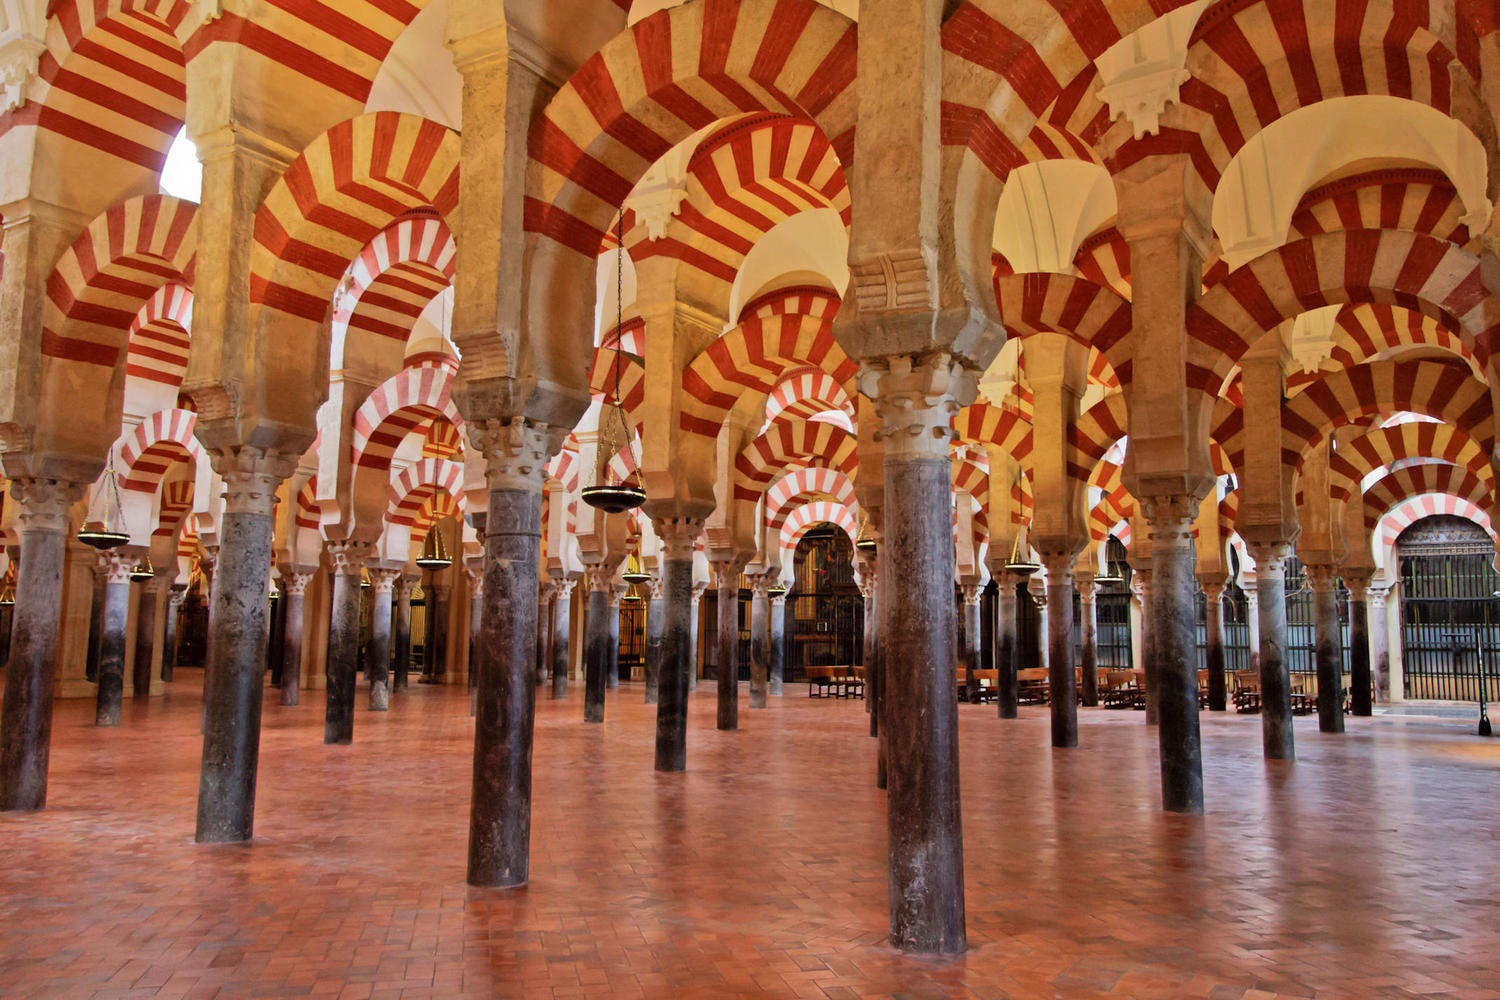 Praying room at the Córdoba mosque.